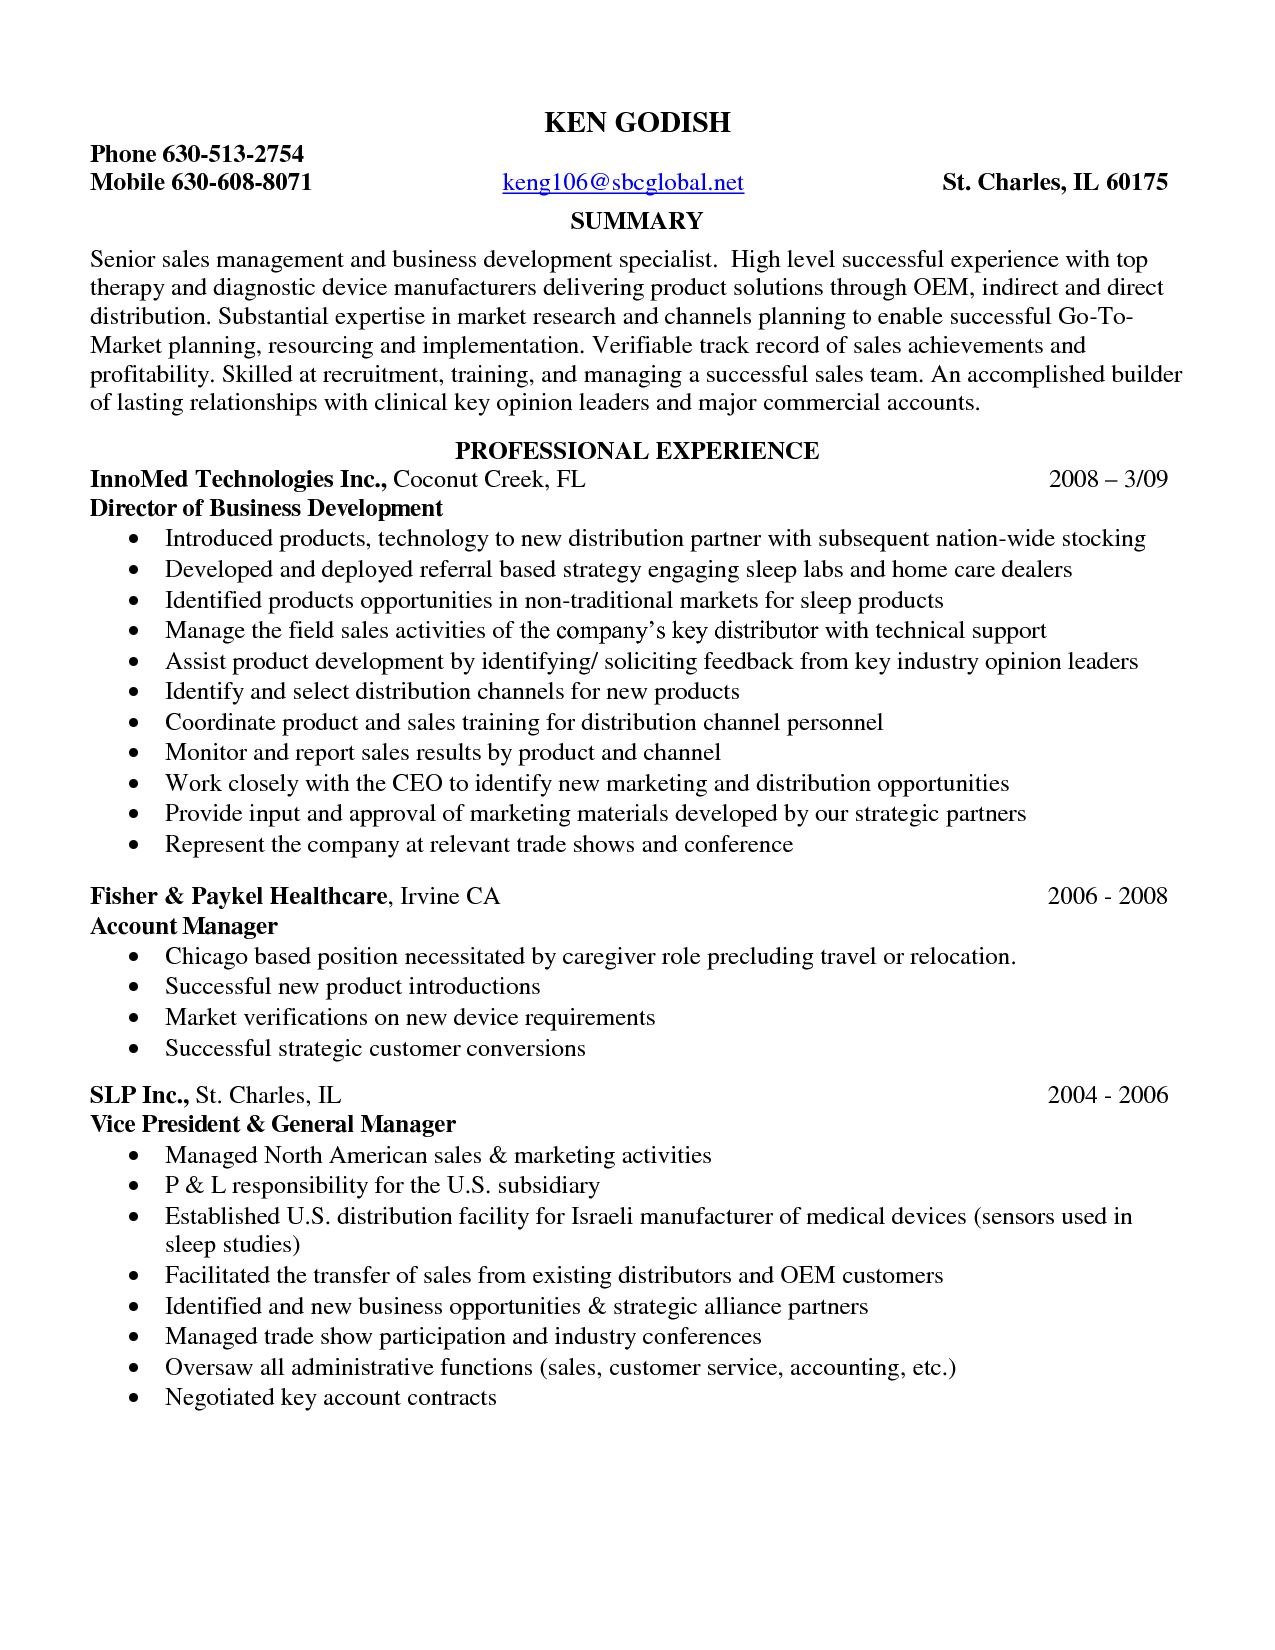 Sample resume entry level pharmaceutical sales sample for Cover letter for entry level sales position